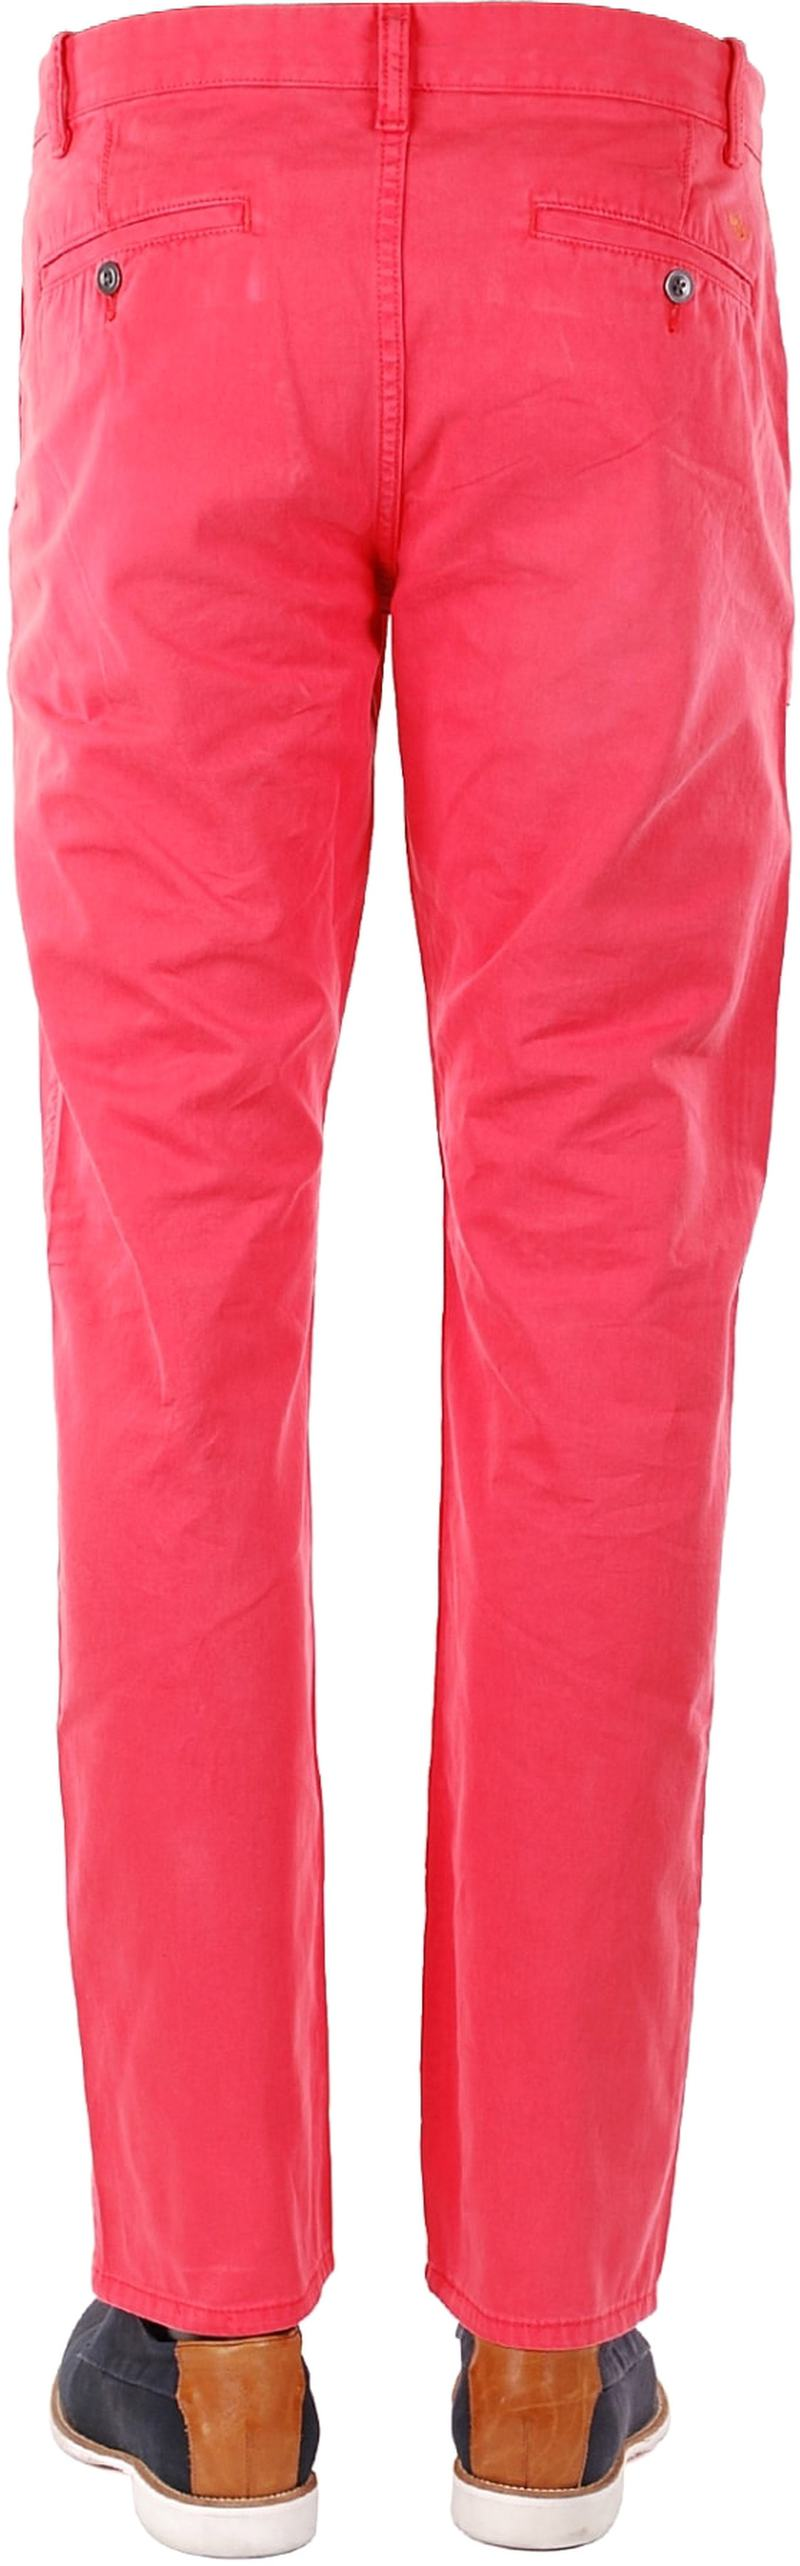 Dockers Chino Alpha Salsa Red